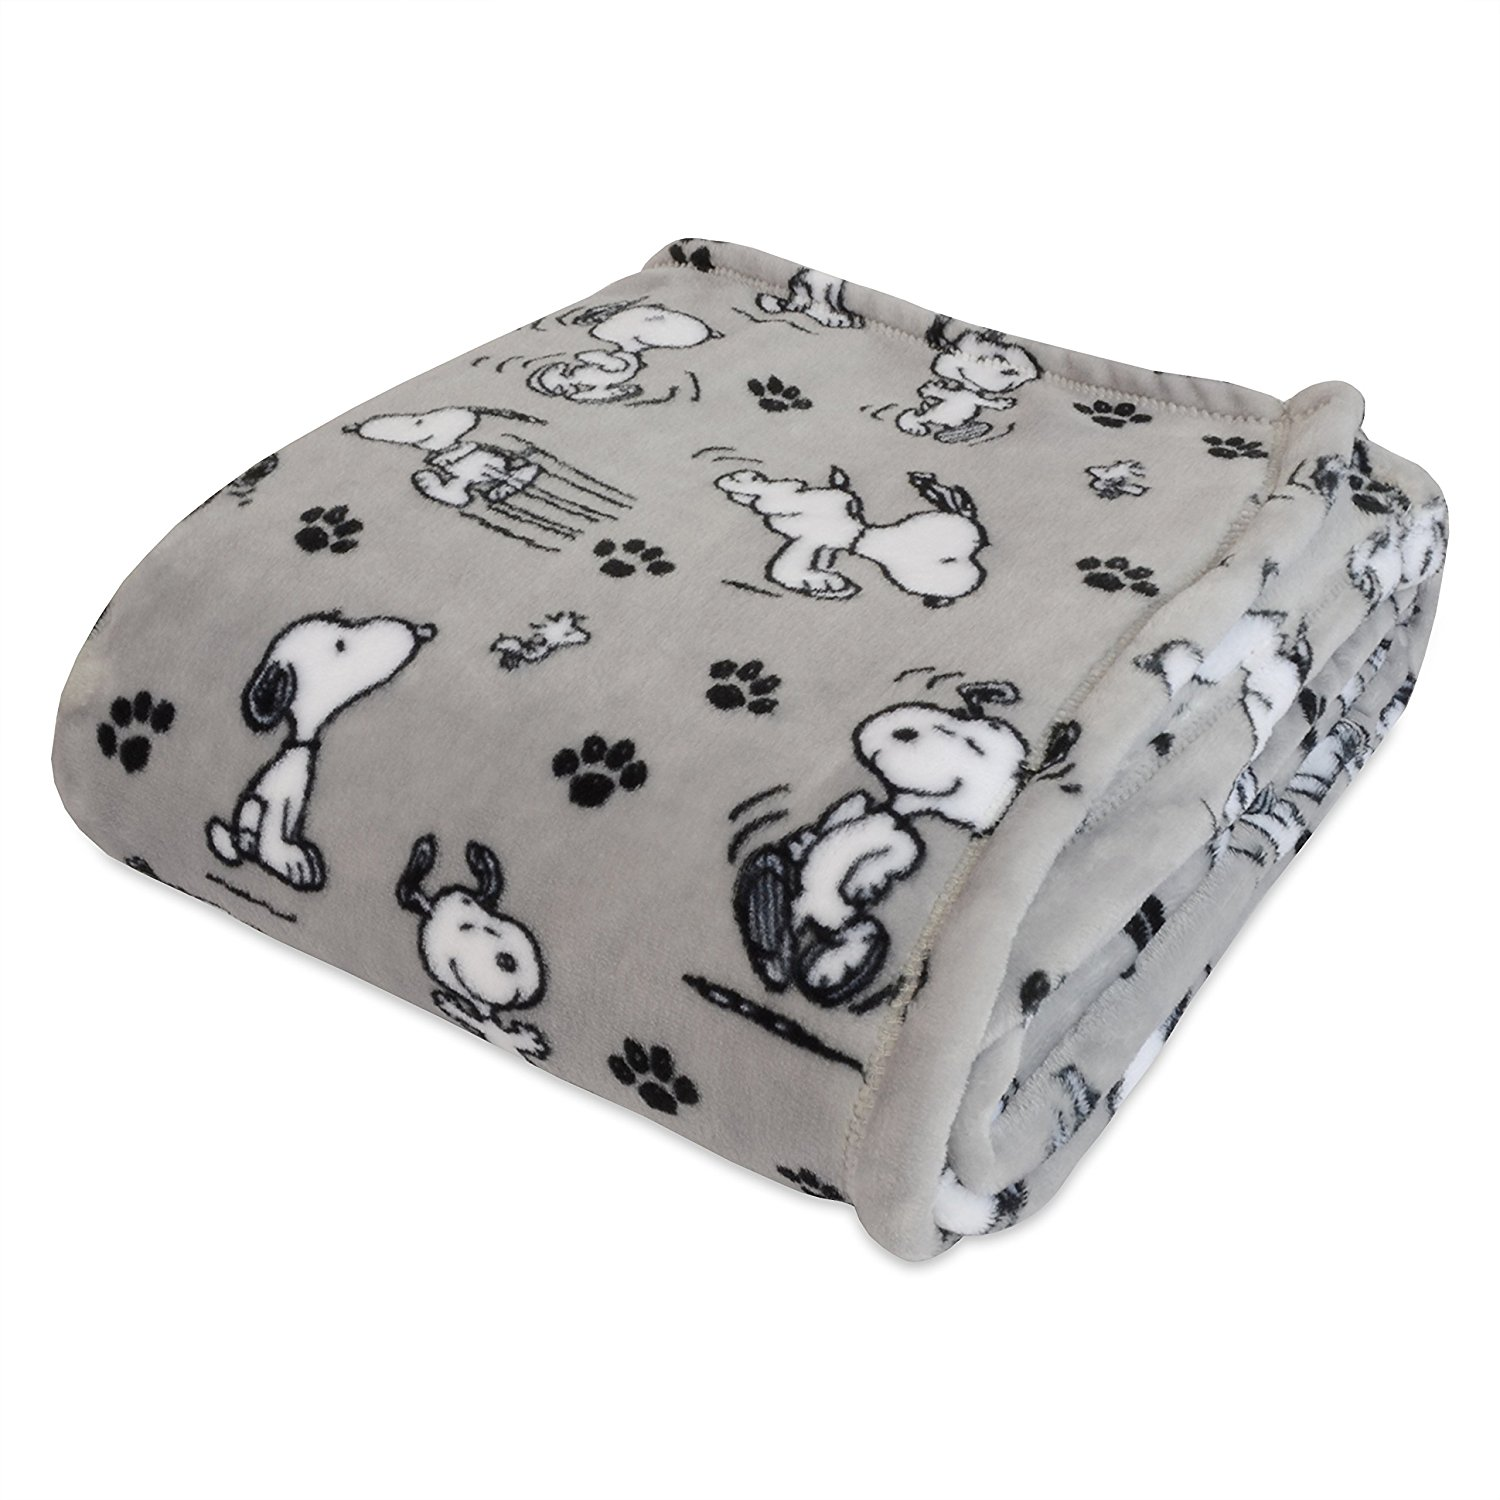 Peanuts Snoopy Plush Throw Blanket